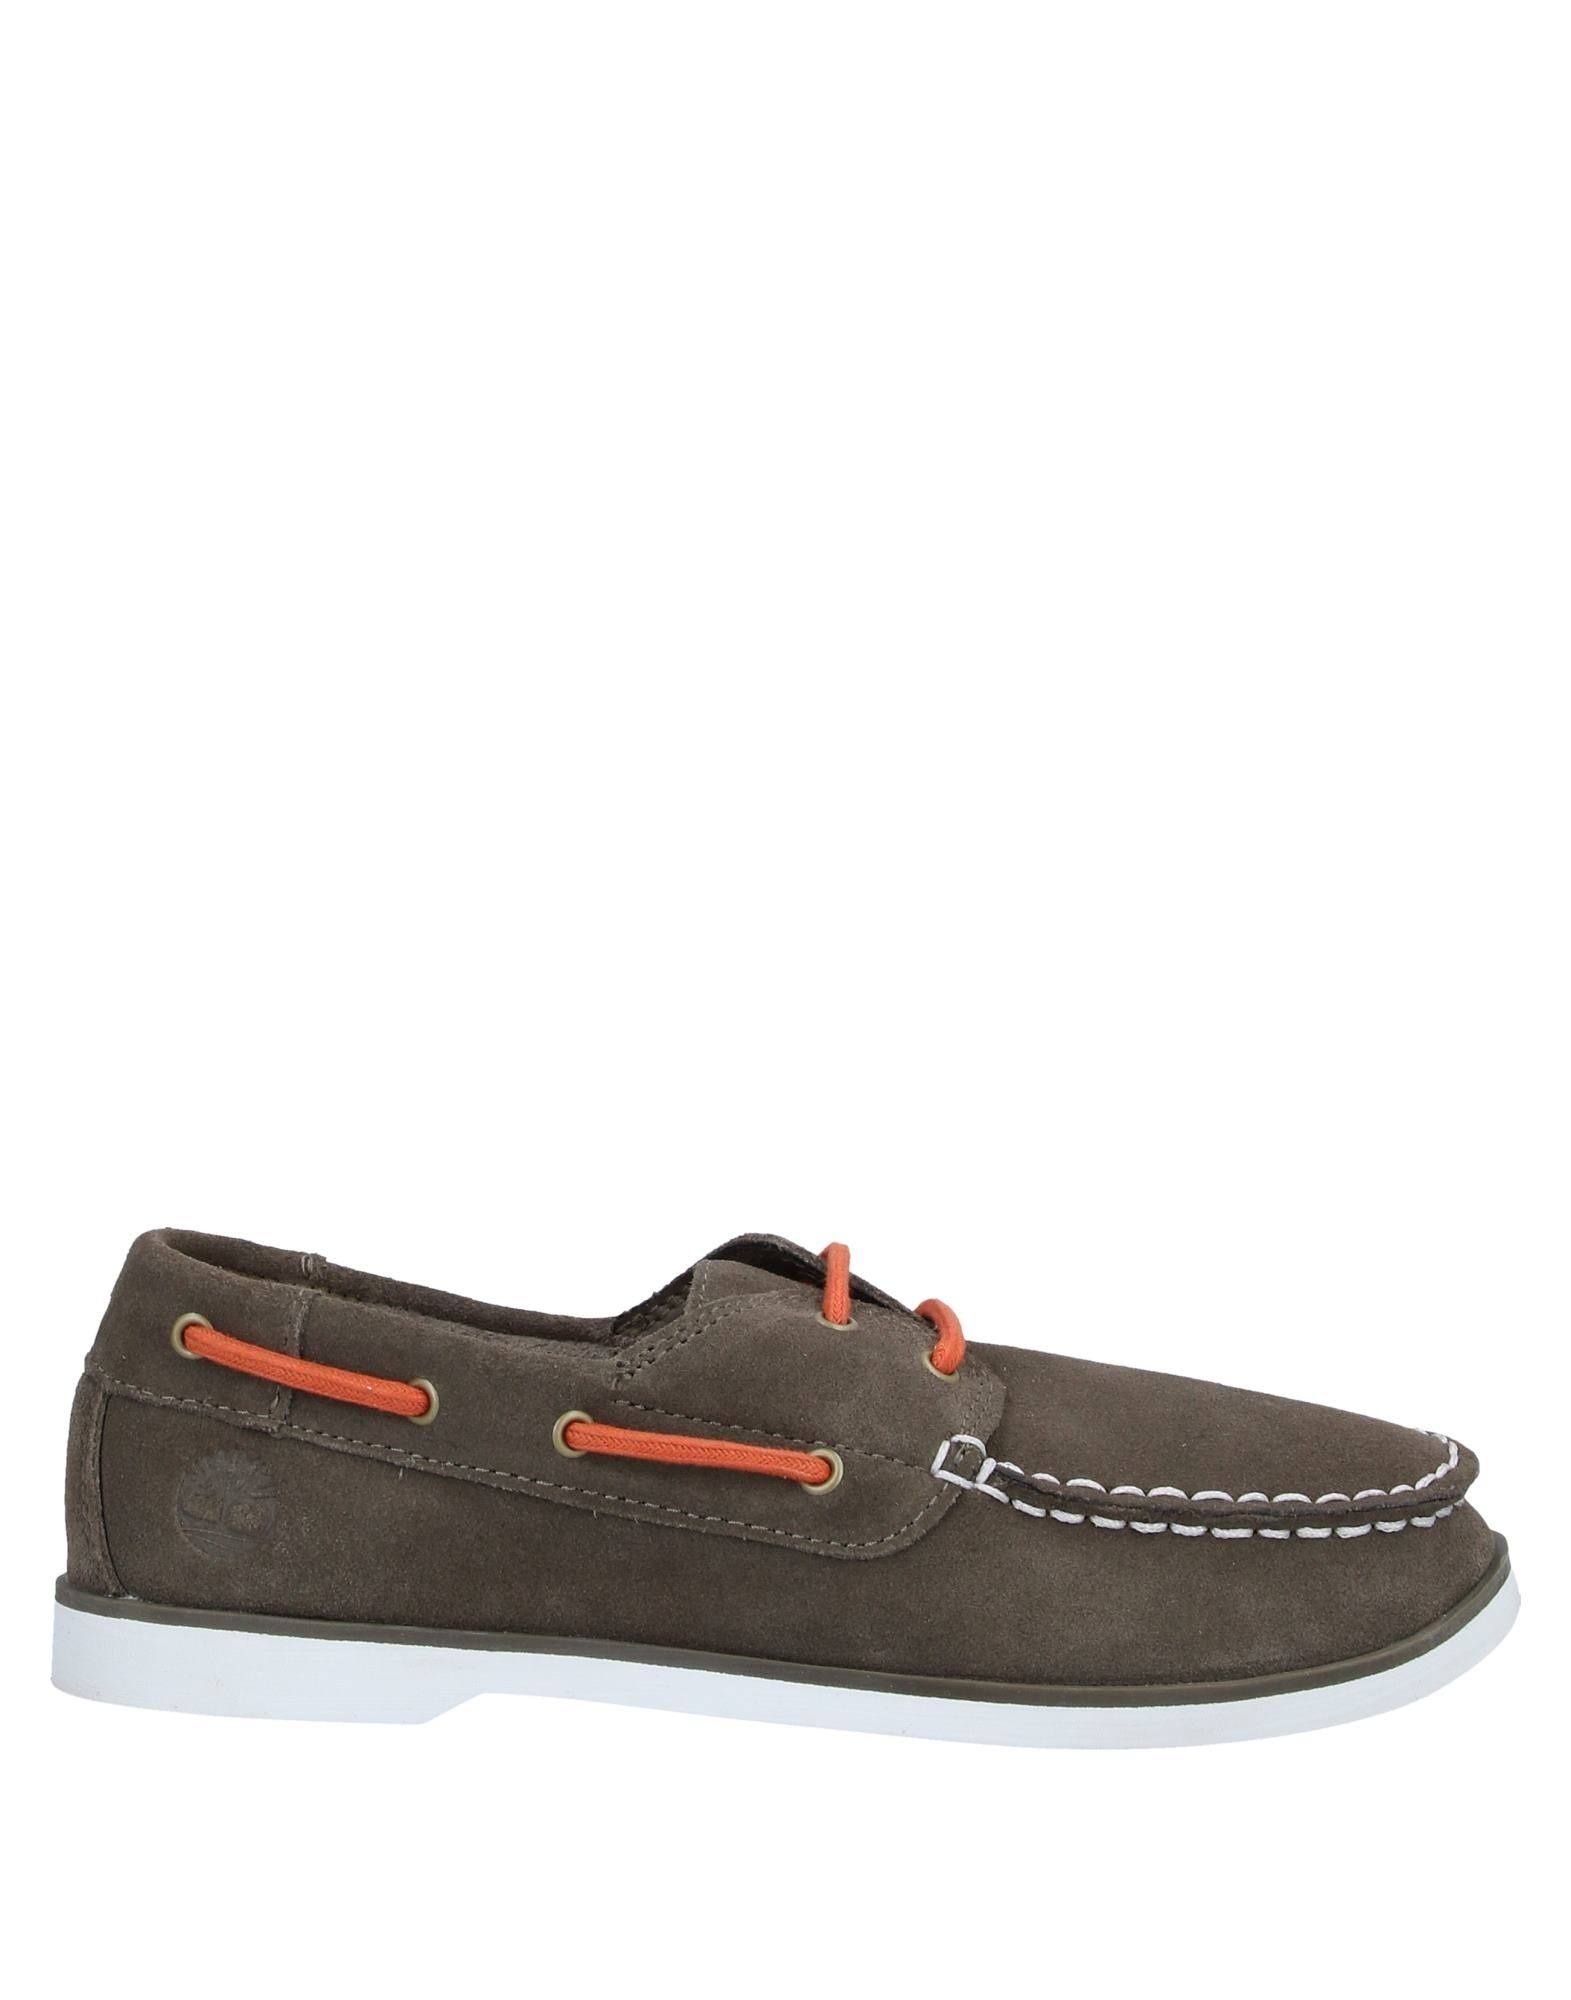 Timberland - Footwear - Lace-up Shoes - On Yoox.com